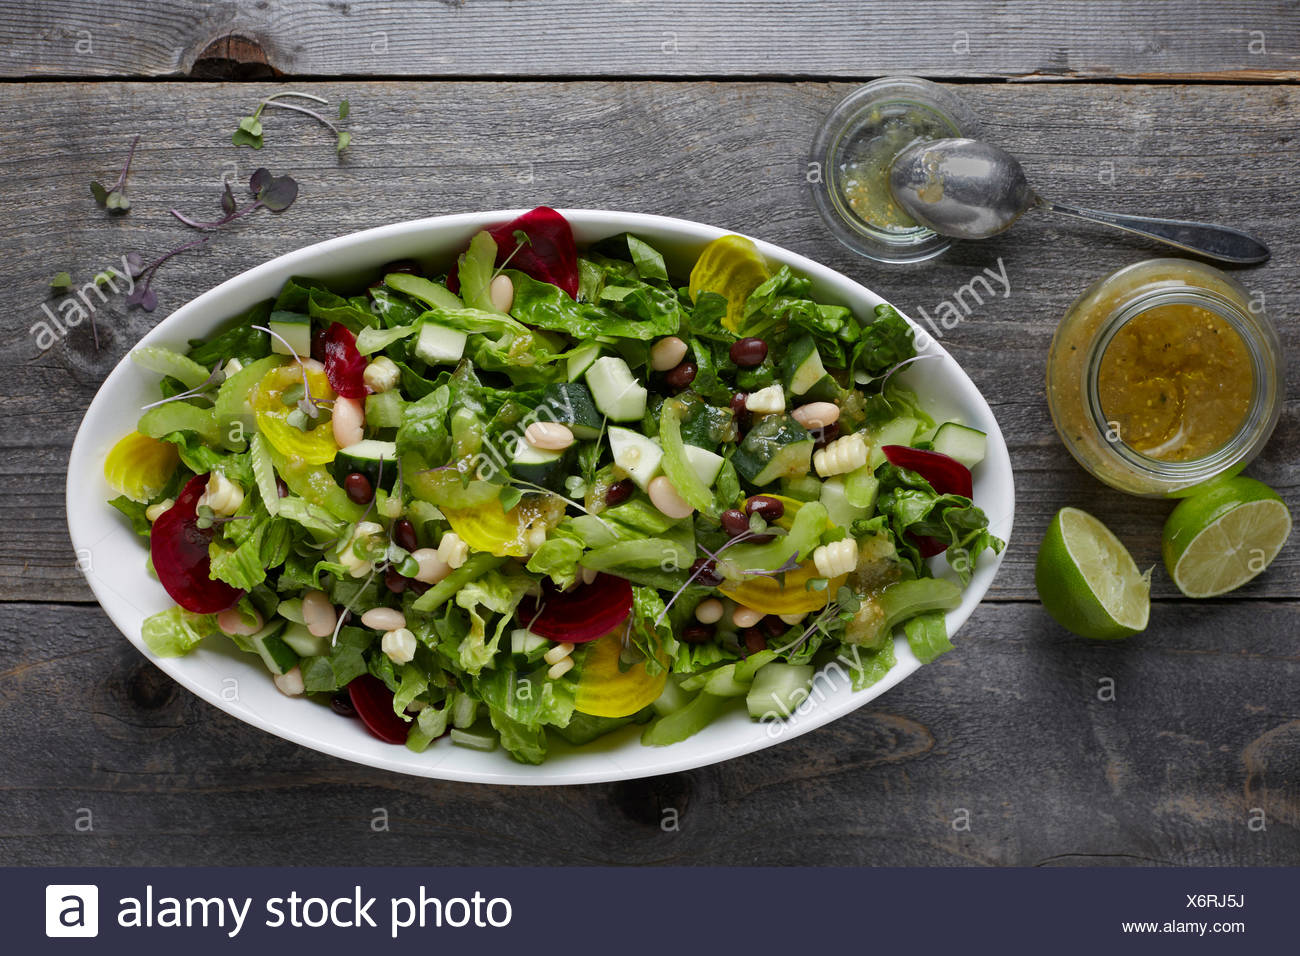 White ceramic bowl full of fresh mixed lettuce salad with healthy toppings, shot areal view with vinaigrette and limes beside th - Stock Image